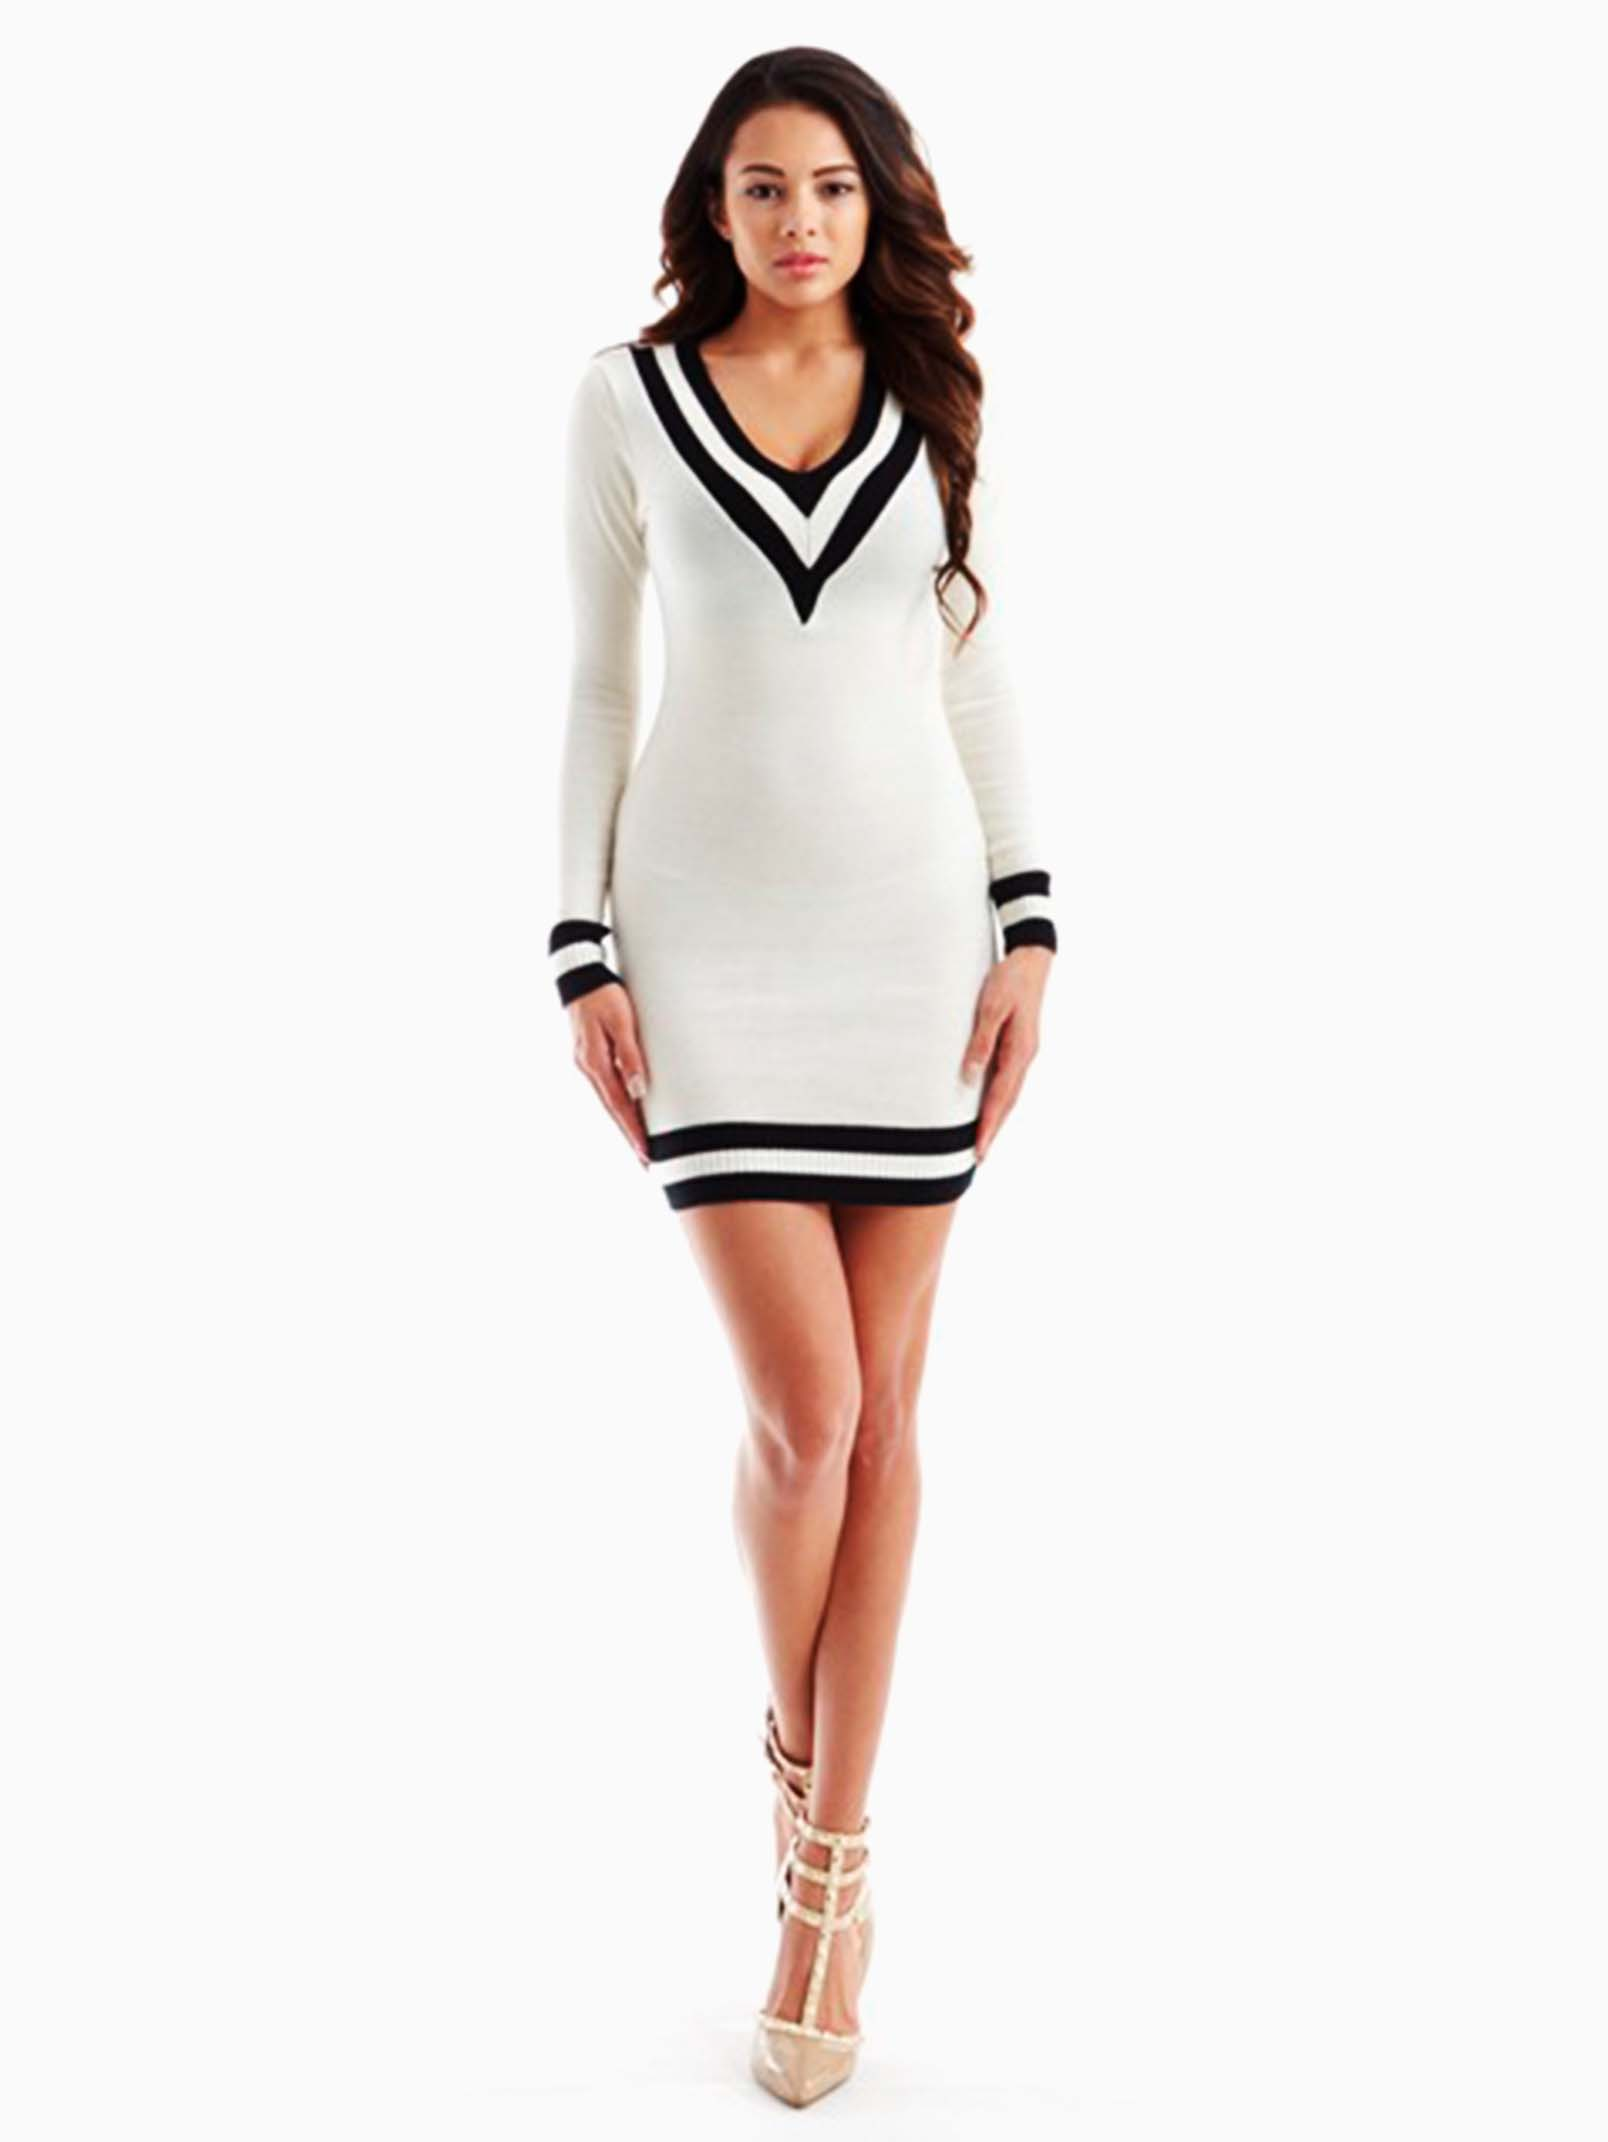 6637cde8d293 Hera Collection White V Neckline Sweater Dress